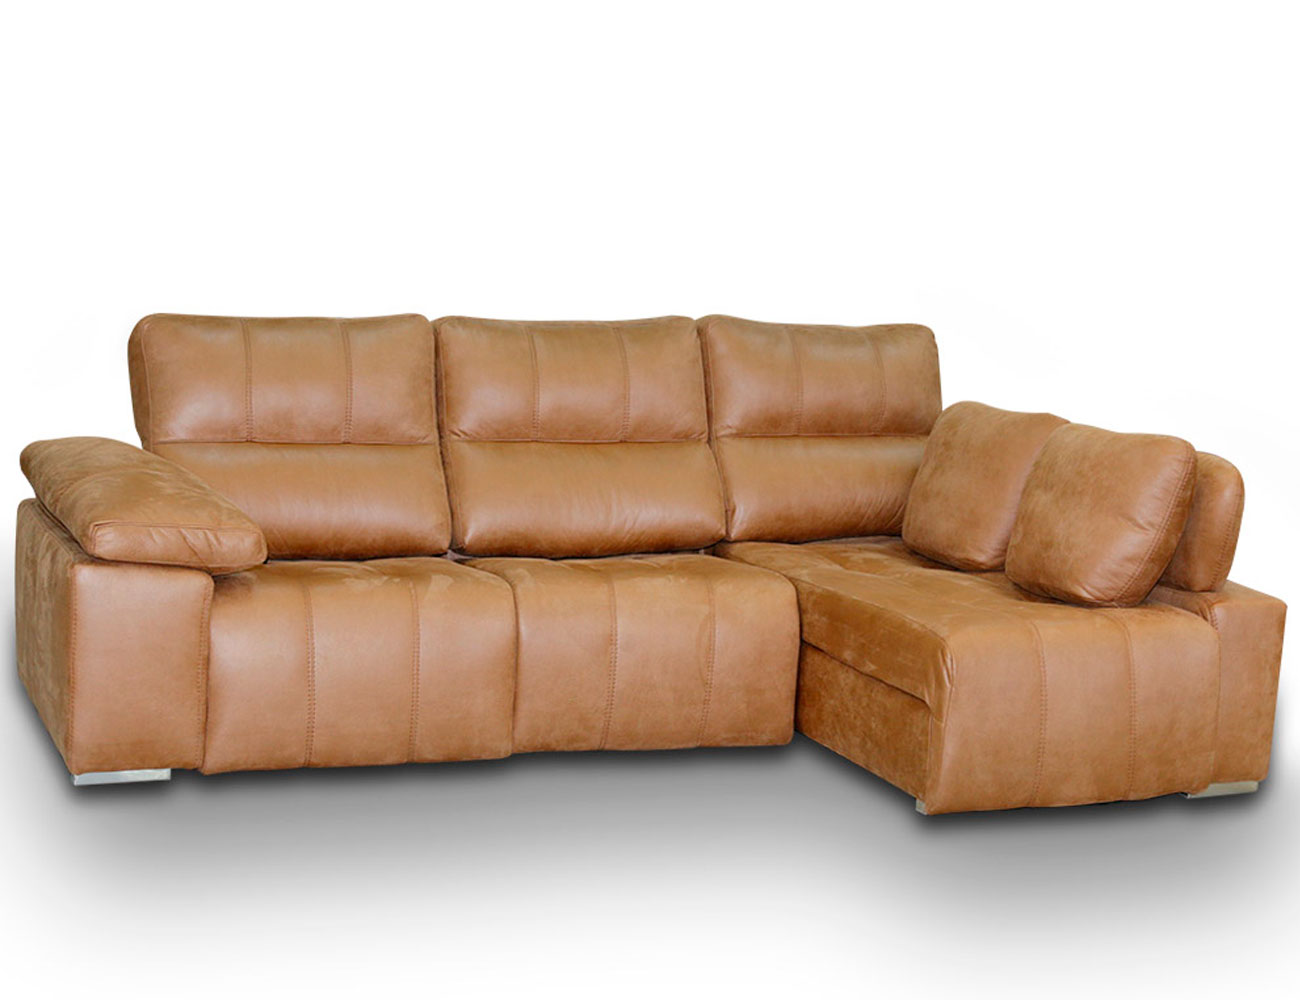 Sofa chaiselongue relax 2 motores anti manchas